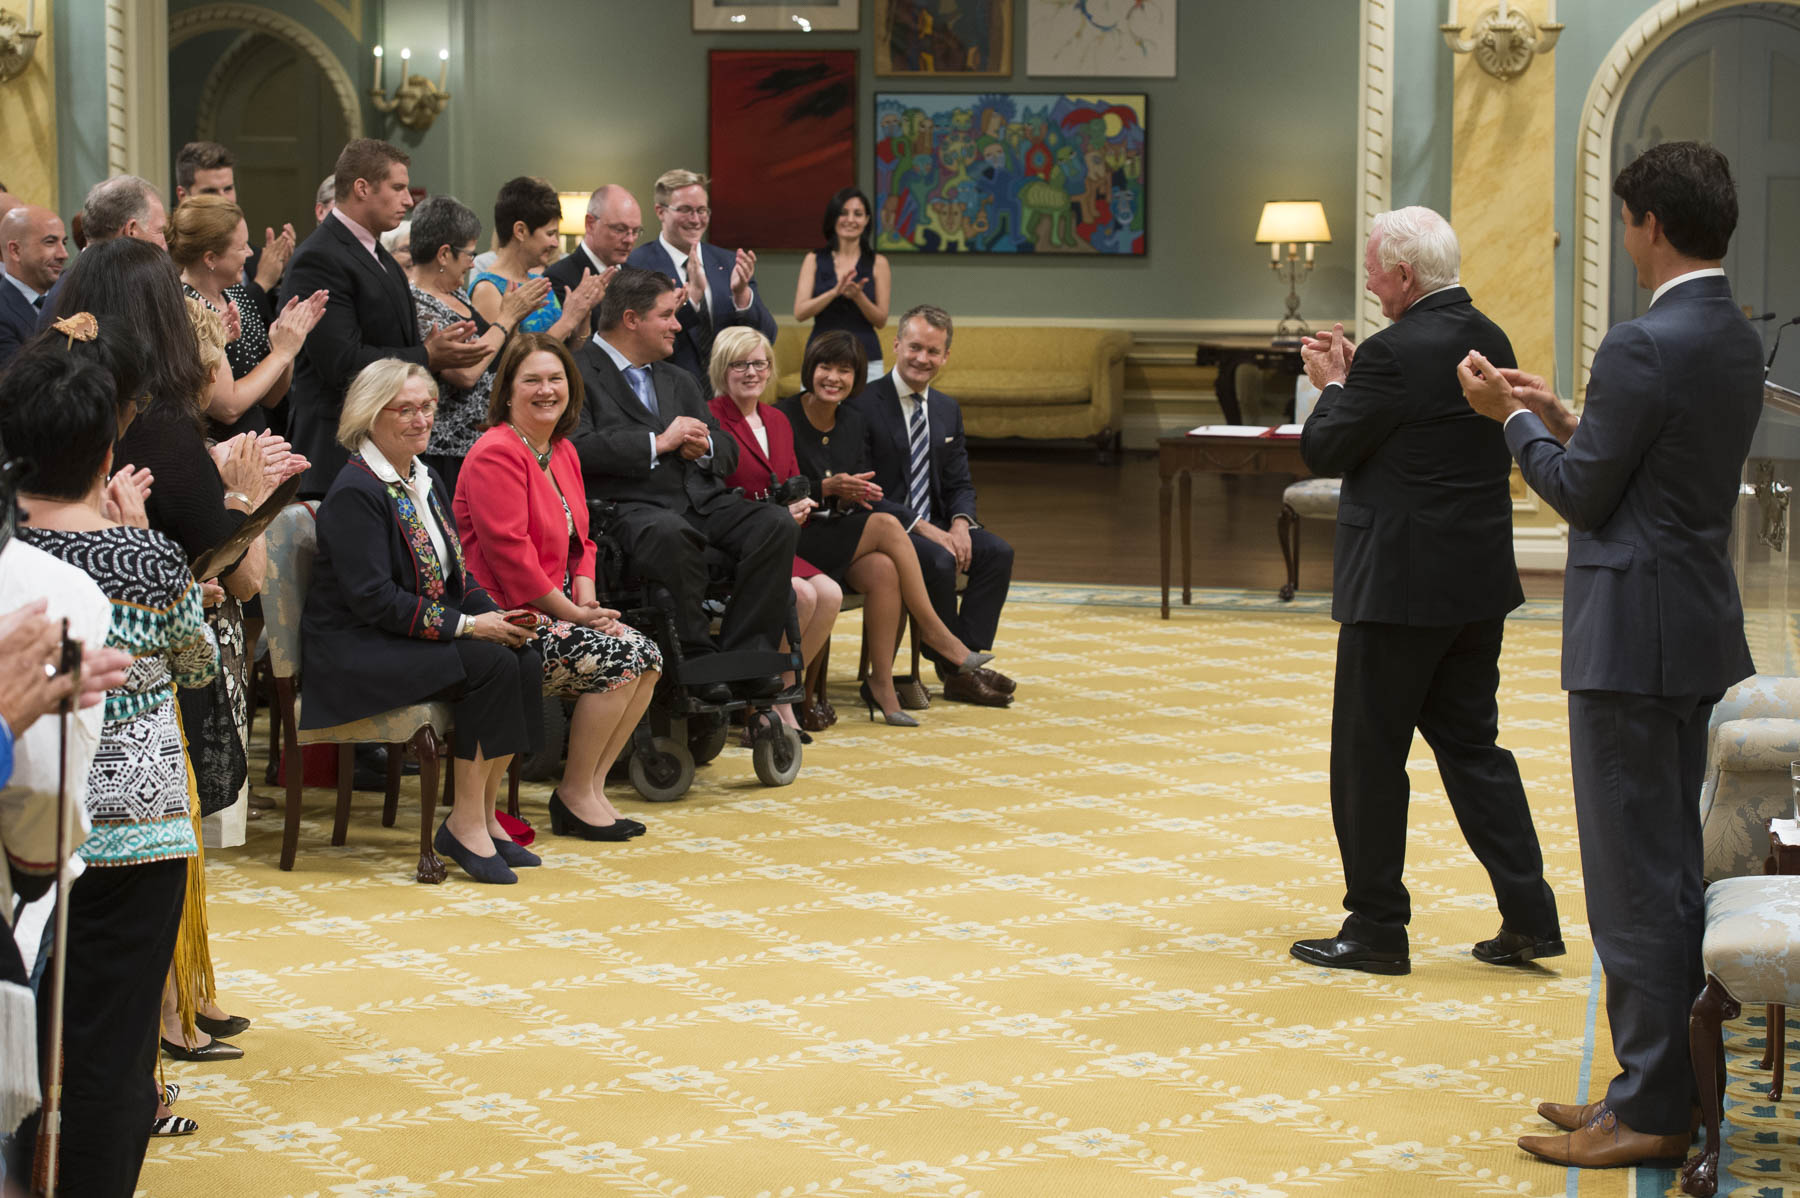 His Excellency the Right Honourable David Johnston, Governor General of Canada, presided  over a swearing-in ceremony on August 28, 2017, at Rideau Hall.